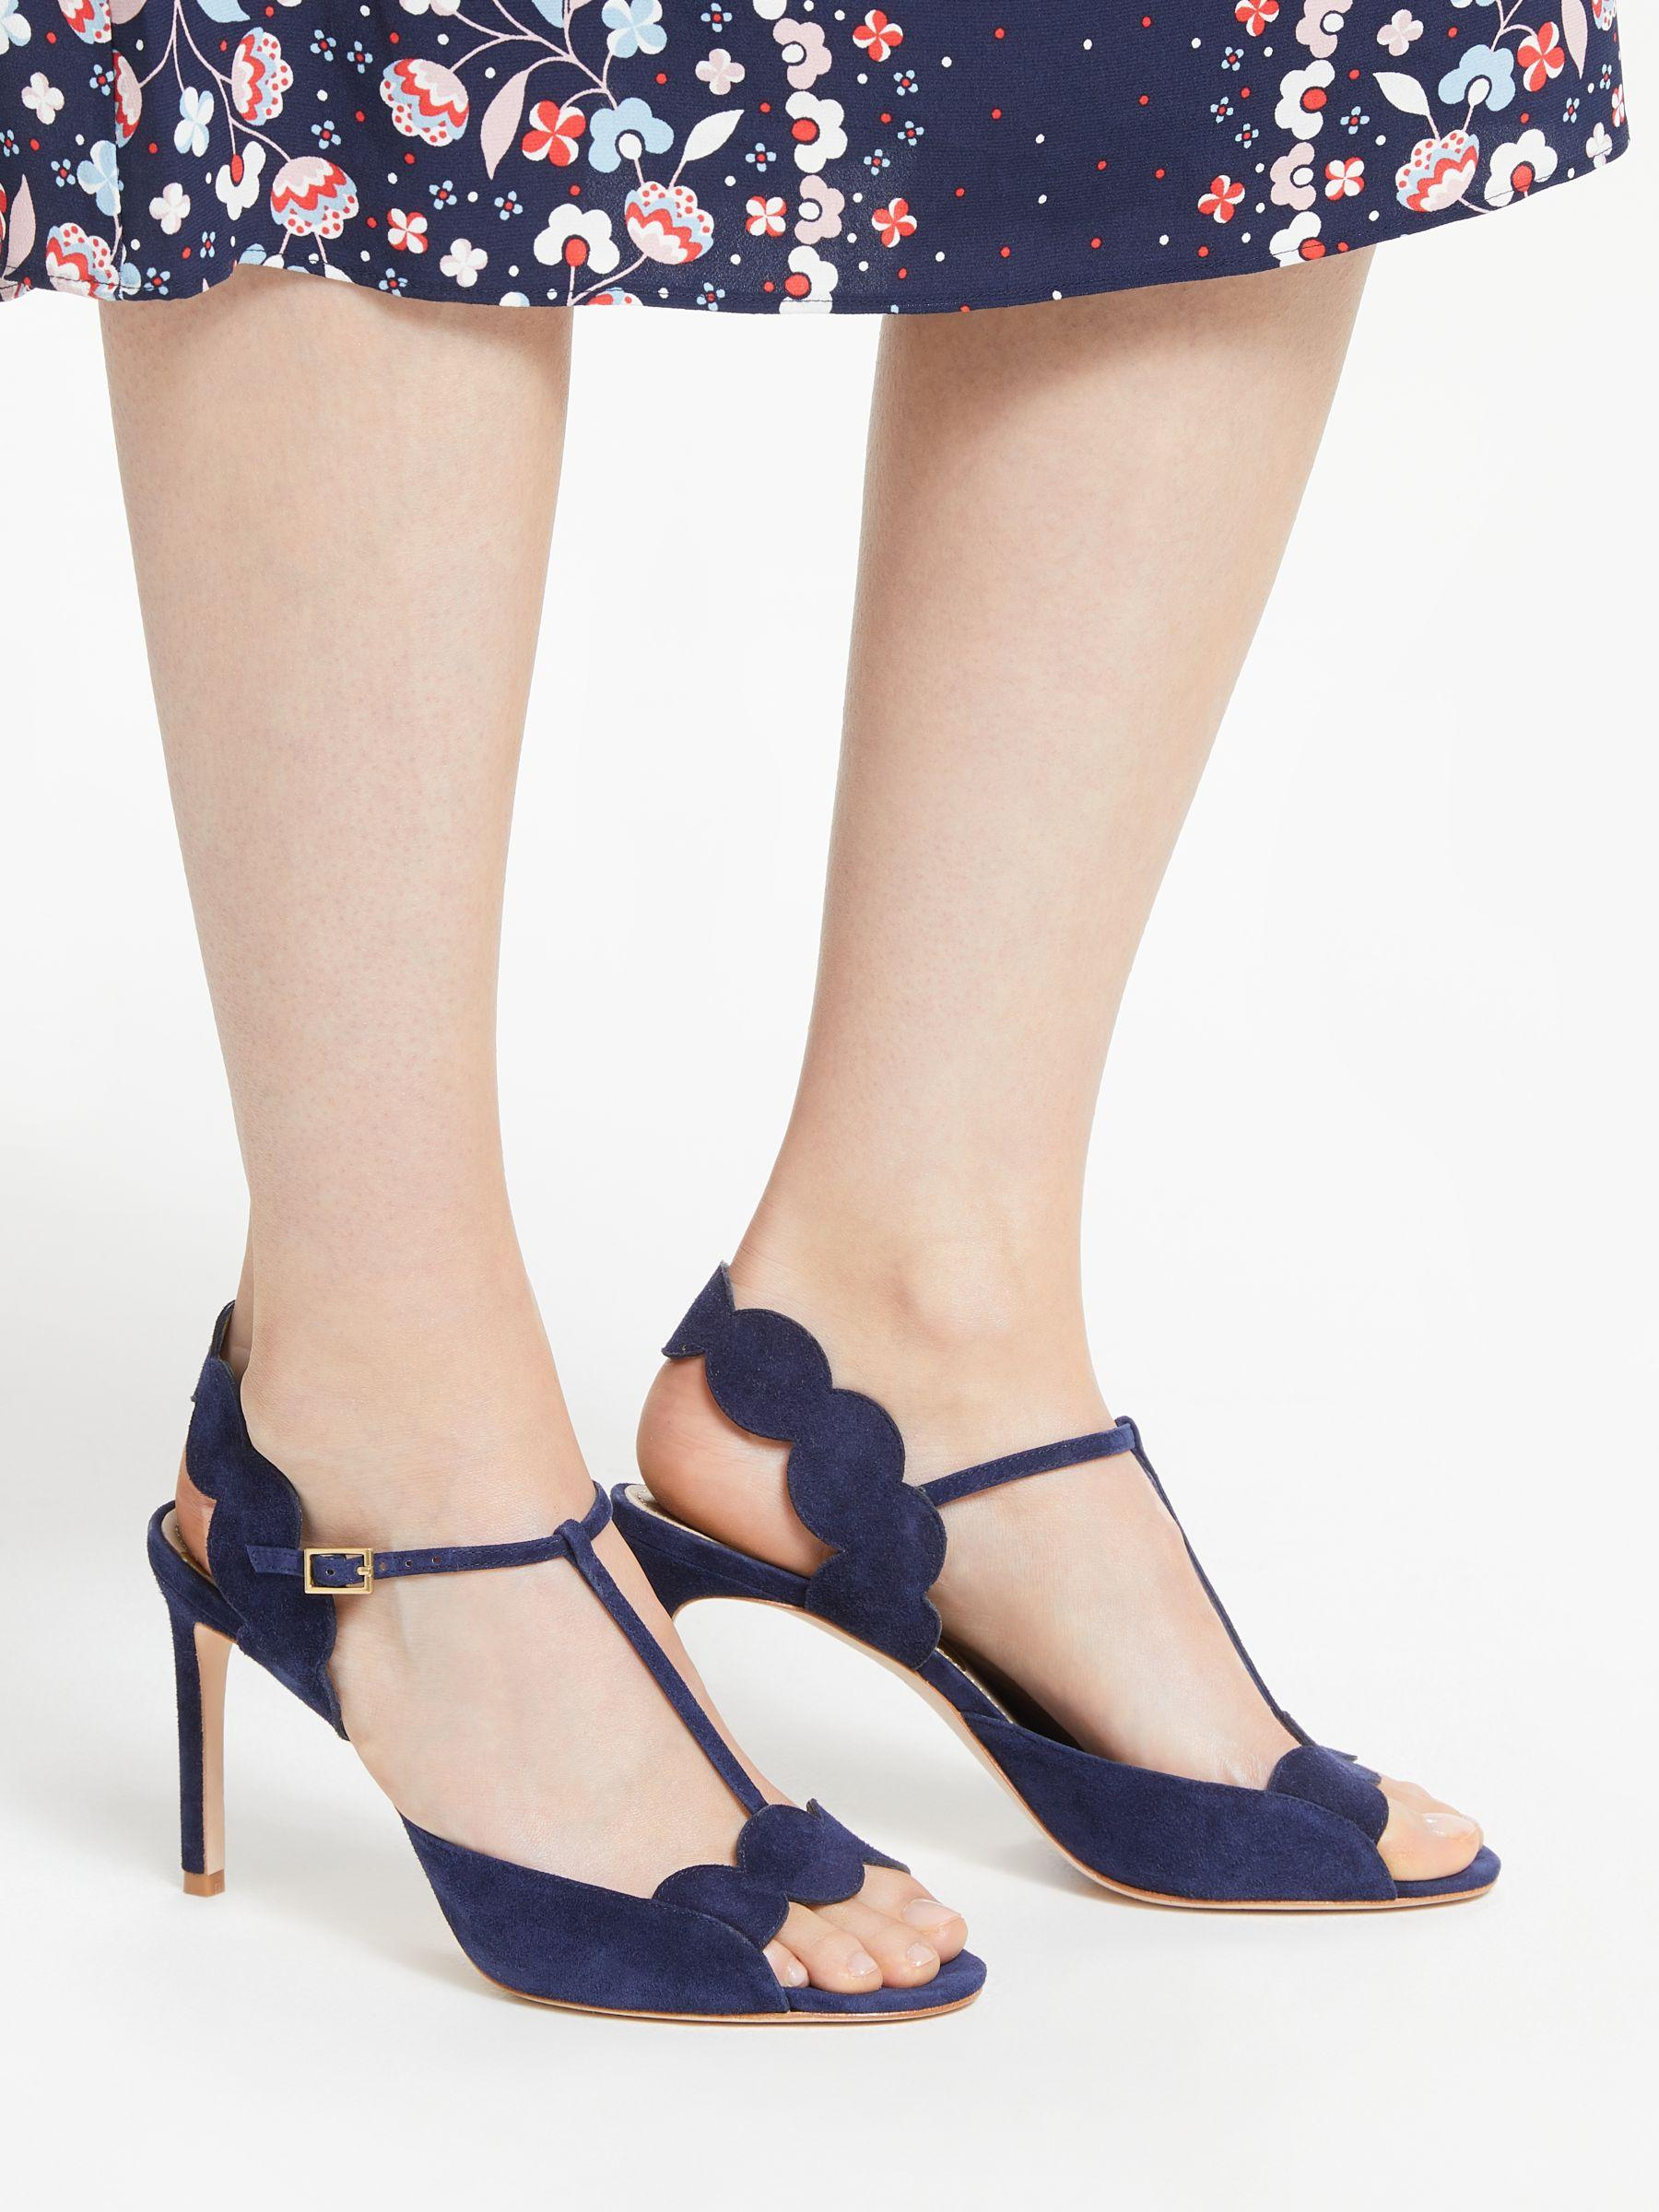 1834e4a87f26 Boden Cecile T-bar Heeled Sandals in Blue - Lyst